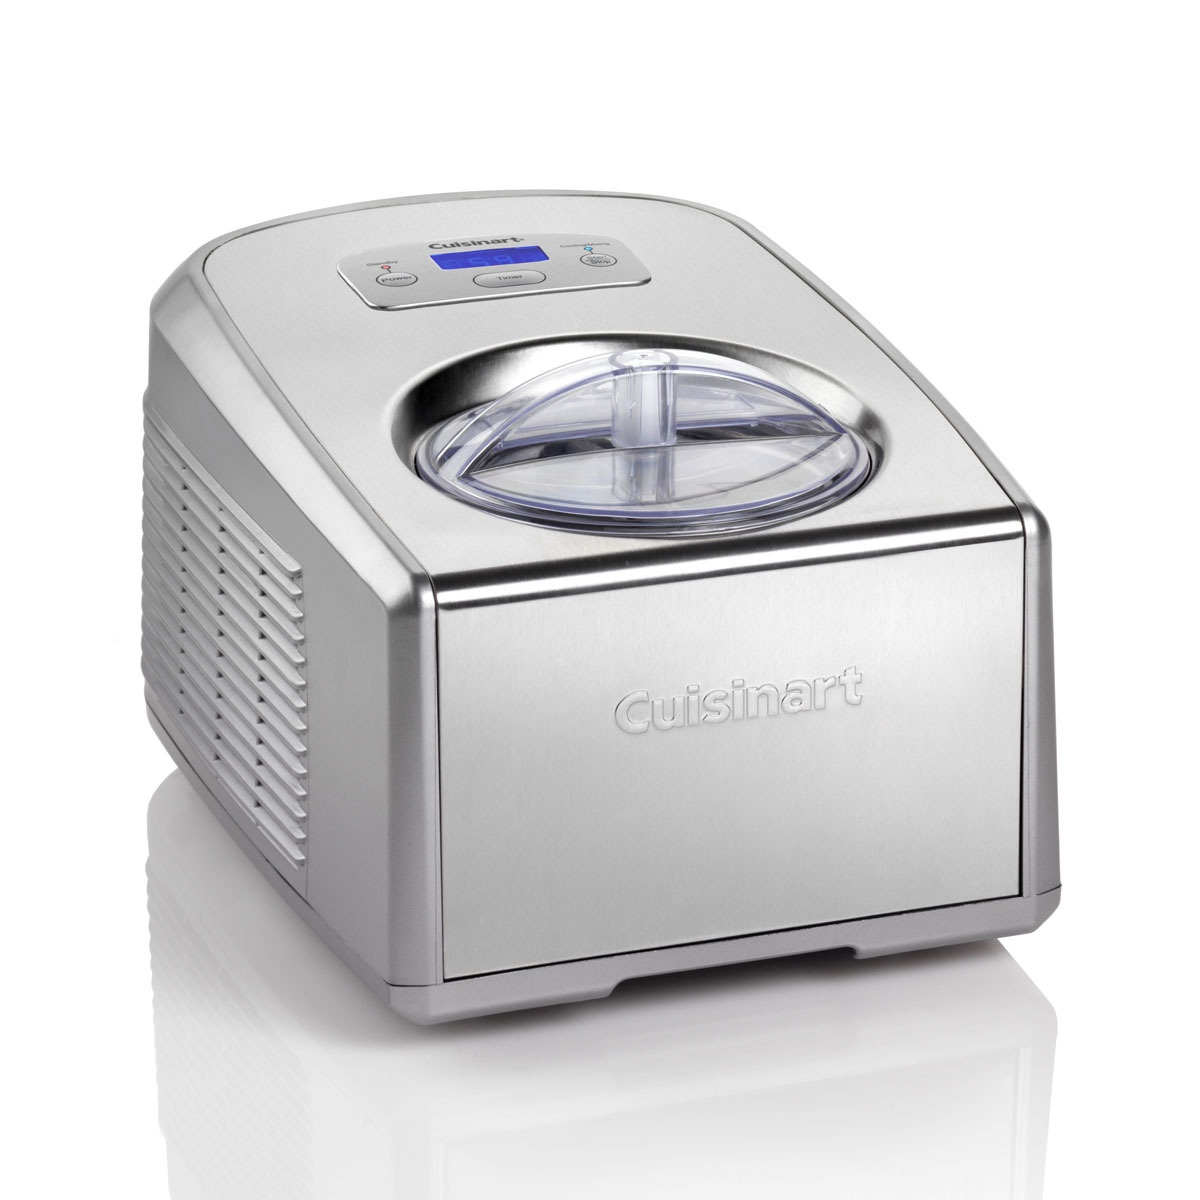 Image of Cuisinart ICE100BCU Ice Cream & Gelato Professional Maker